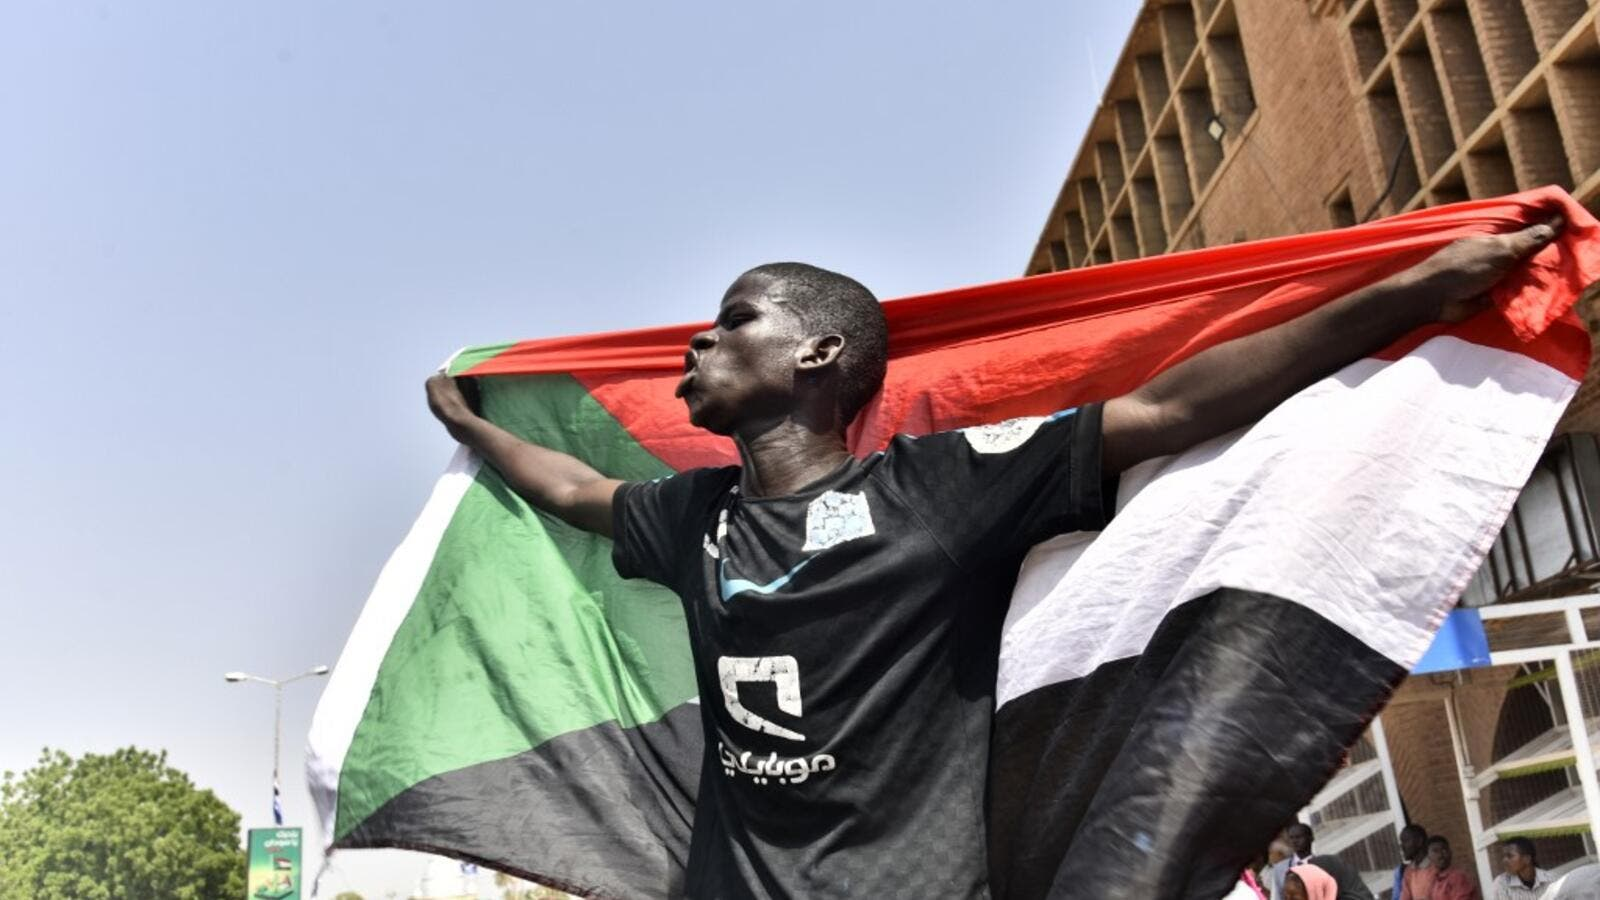 A Sudanese man spreads a national flag in Omdurman as he takes part in a rally in solidarity with Ahmed al-Kheir, a young Sudanese who died in custody after his arrest in January on allegations of organising anti-Bashir protests, on August 28, 2019. (AFP/ File Photo)